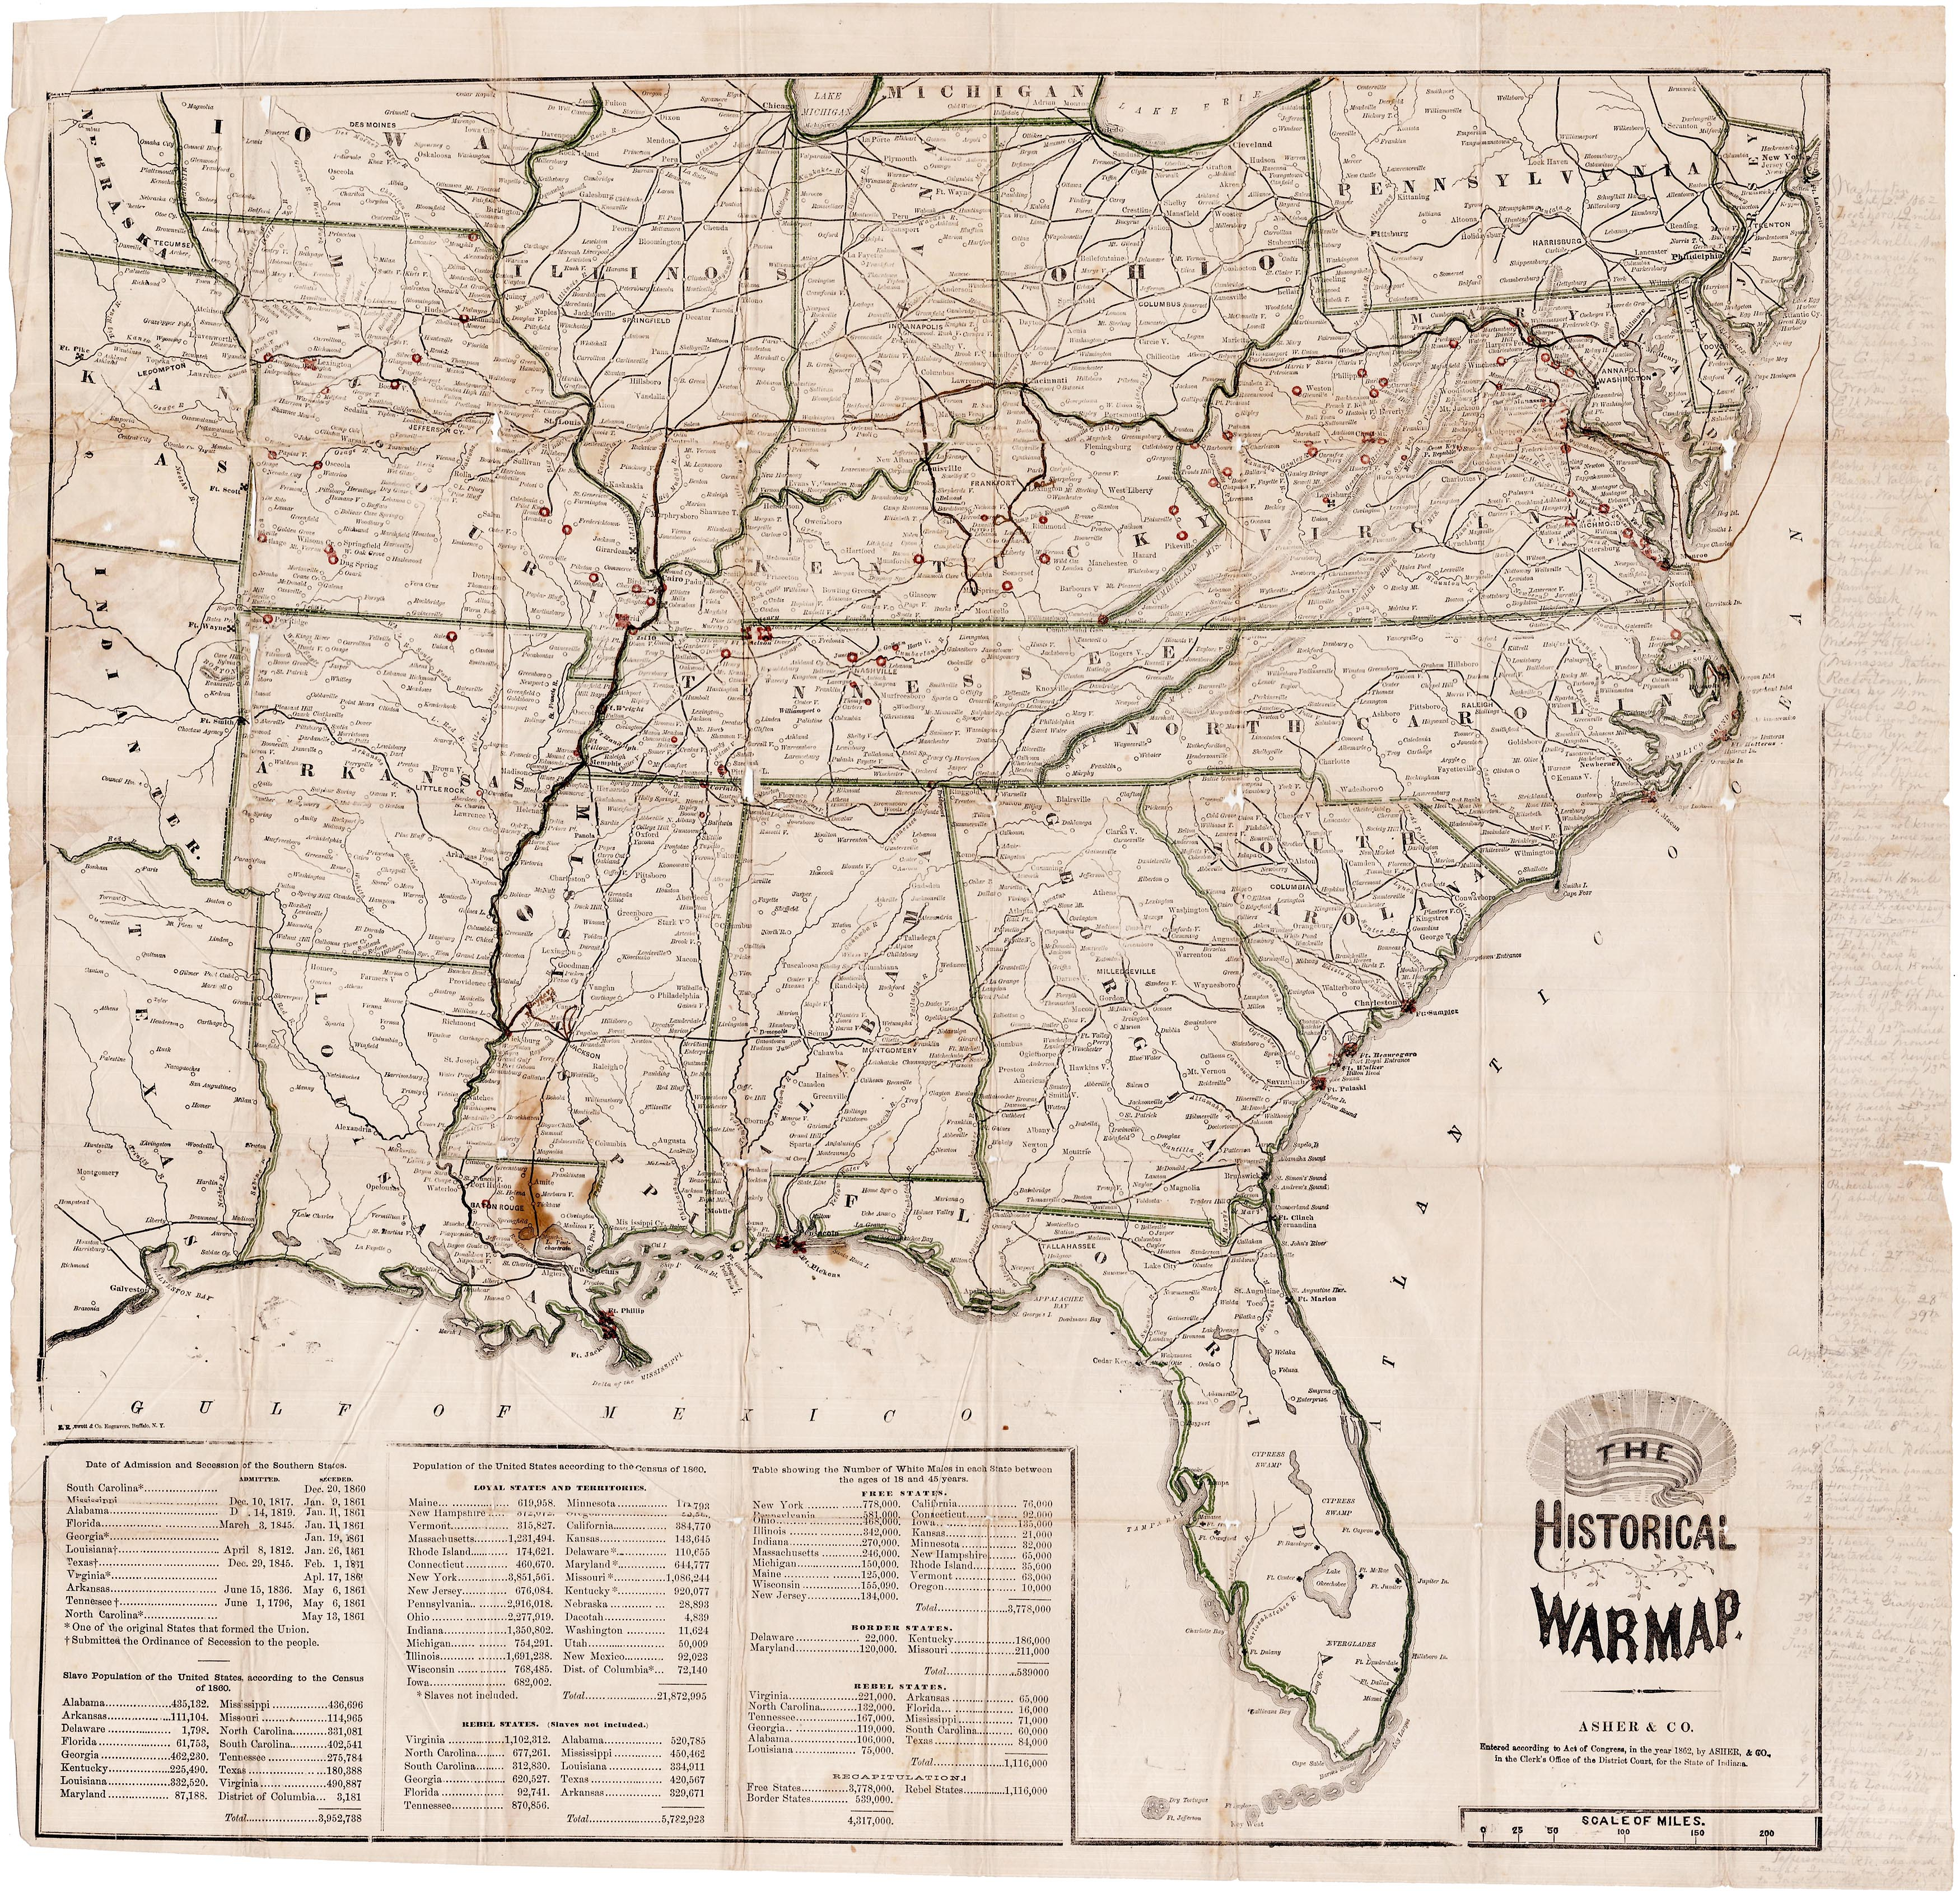 Civil War Era Historical War Map Massively Annotated By A